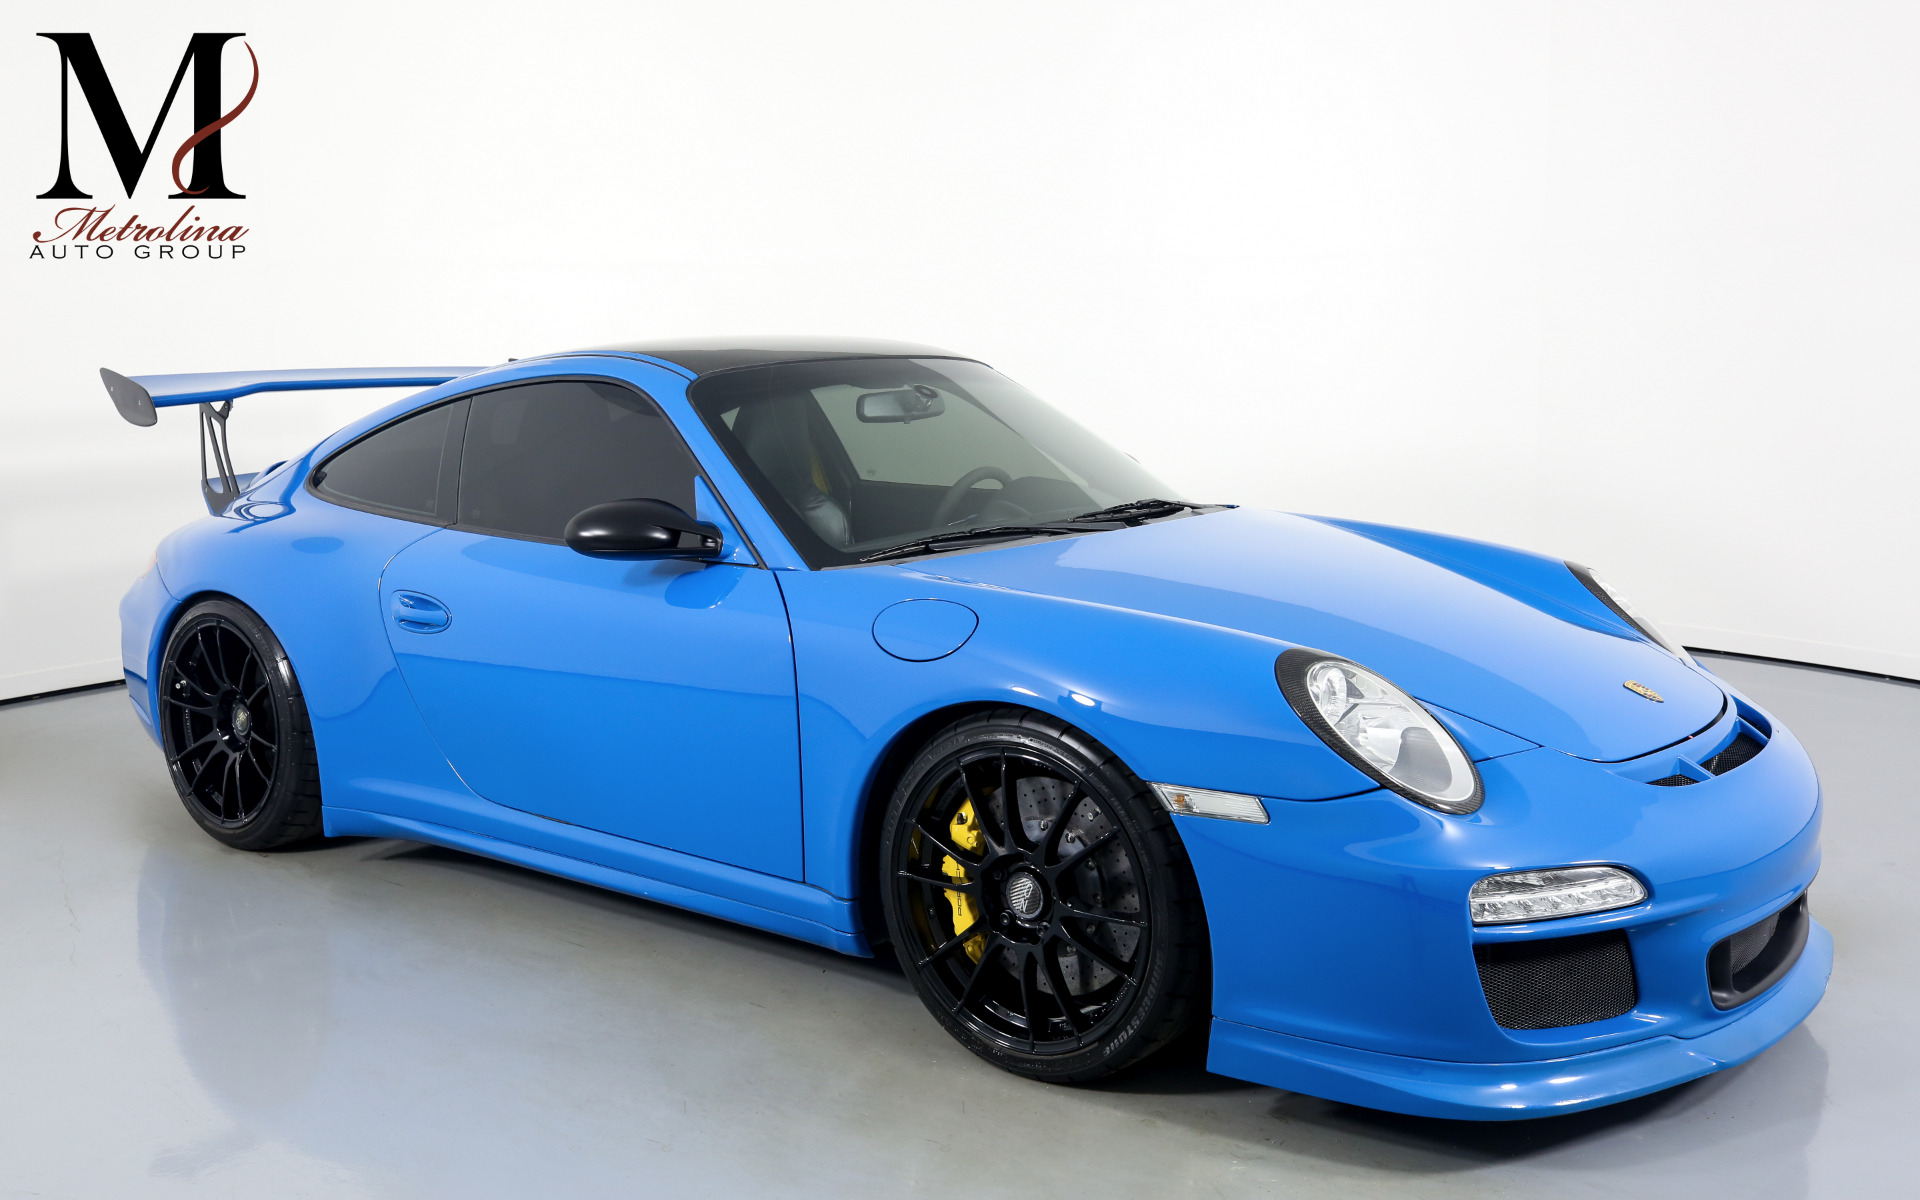 Used 2007 Porsche 911 GT3 for sale $99,996 at Metrolina Auto Group in Charlotte NC 28217 - 1